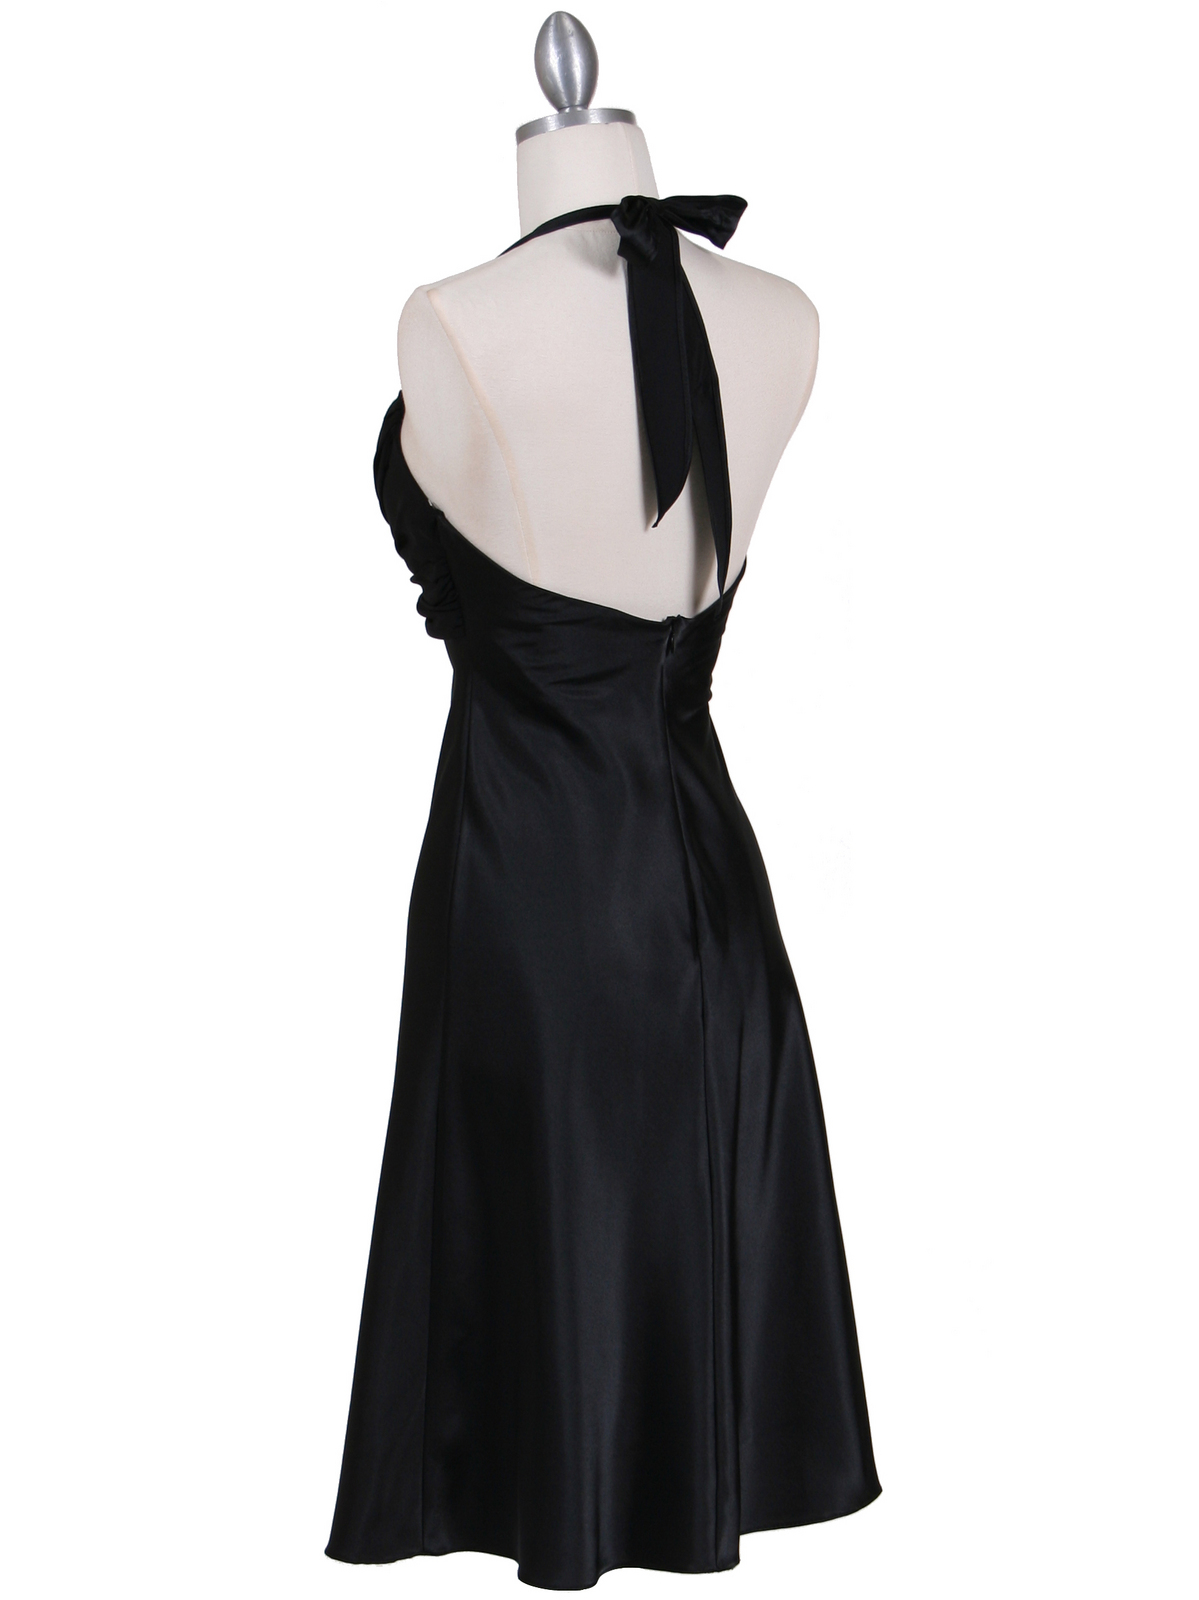 Black Halter Cocktail Dress with Rhinestone Pin | Sung Boutique L.A.